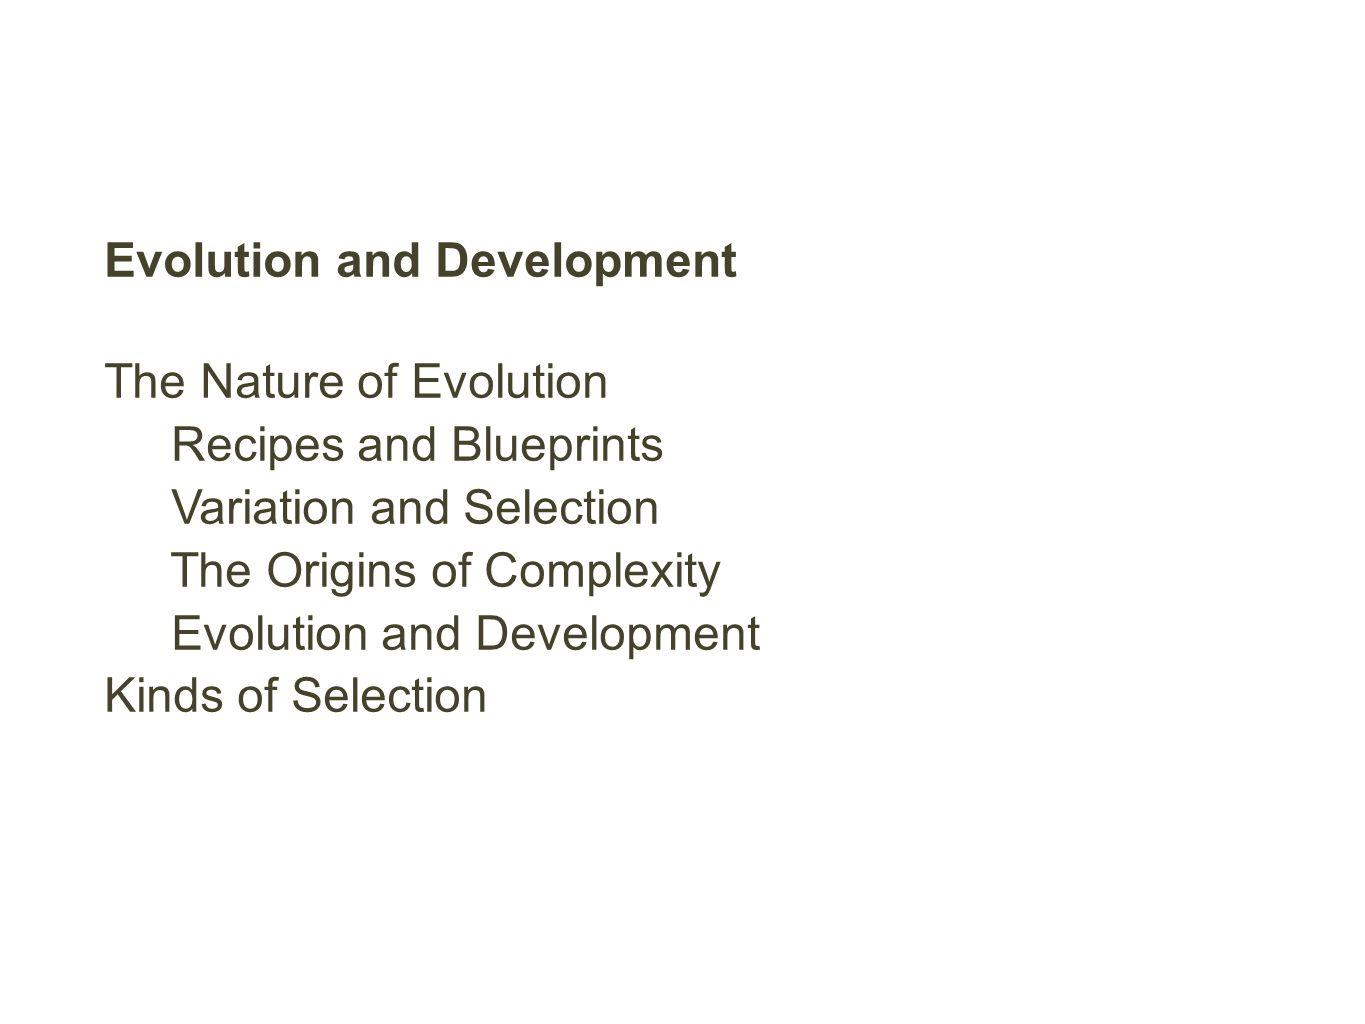 Evolution and Development The Nature of Evolution Recipes and Blueprints Variation and Selection The Origins of Complexity Evolution and Development Kinds of Selection